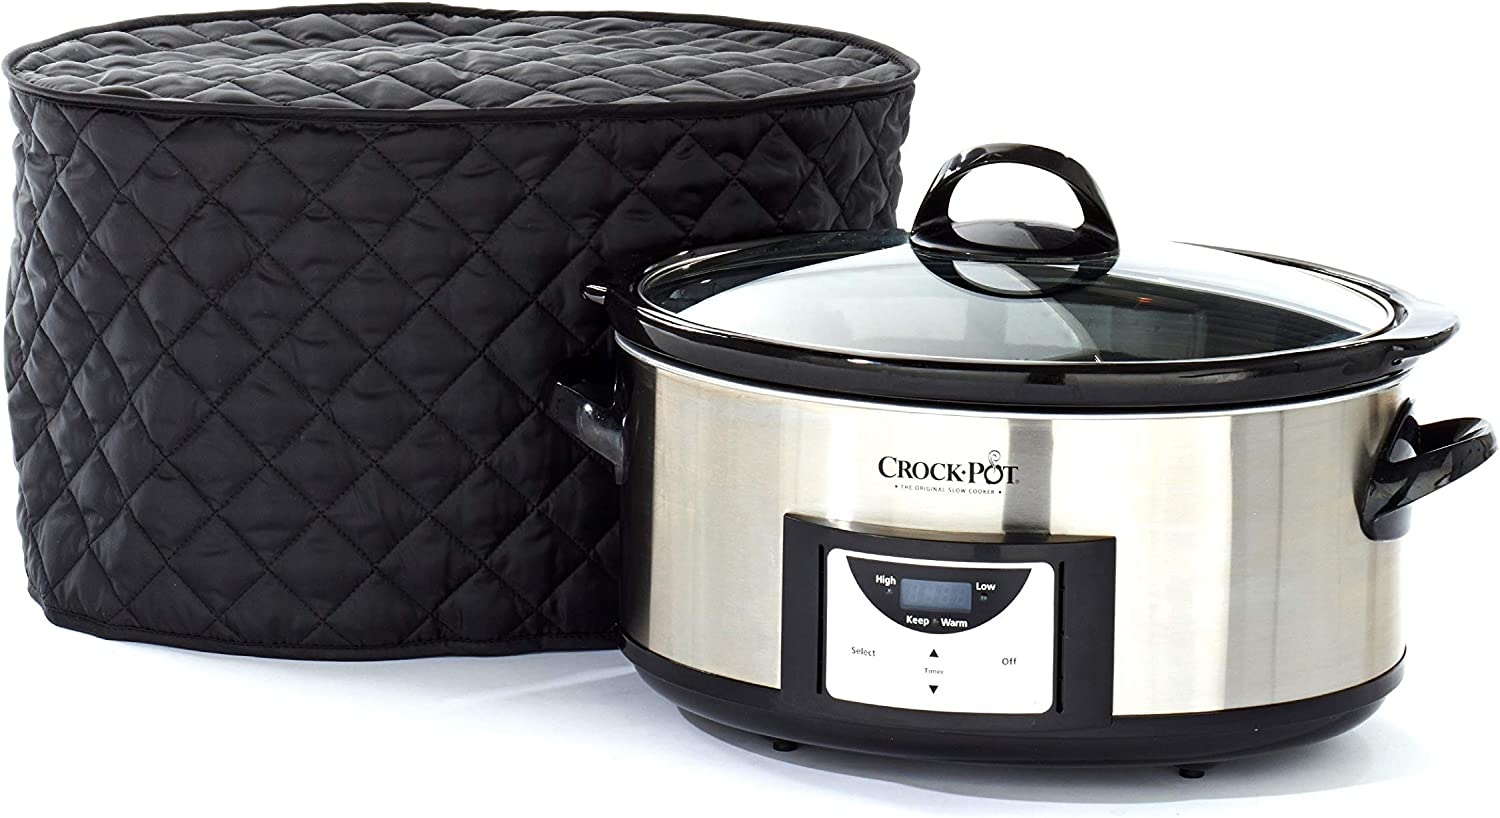 Covermates Slow Cooker Cover 17W x 12D x 17H Diamond Collection 2 YR Warranty Year Around Protection – Black